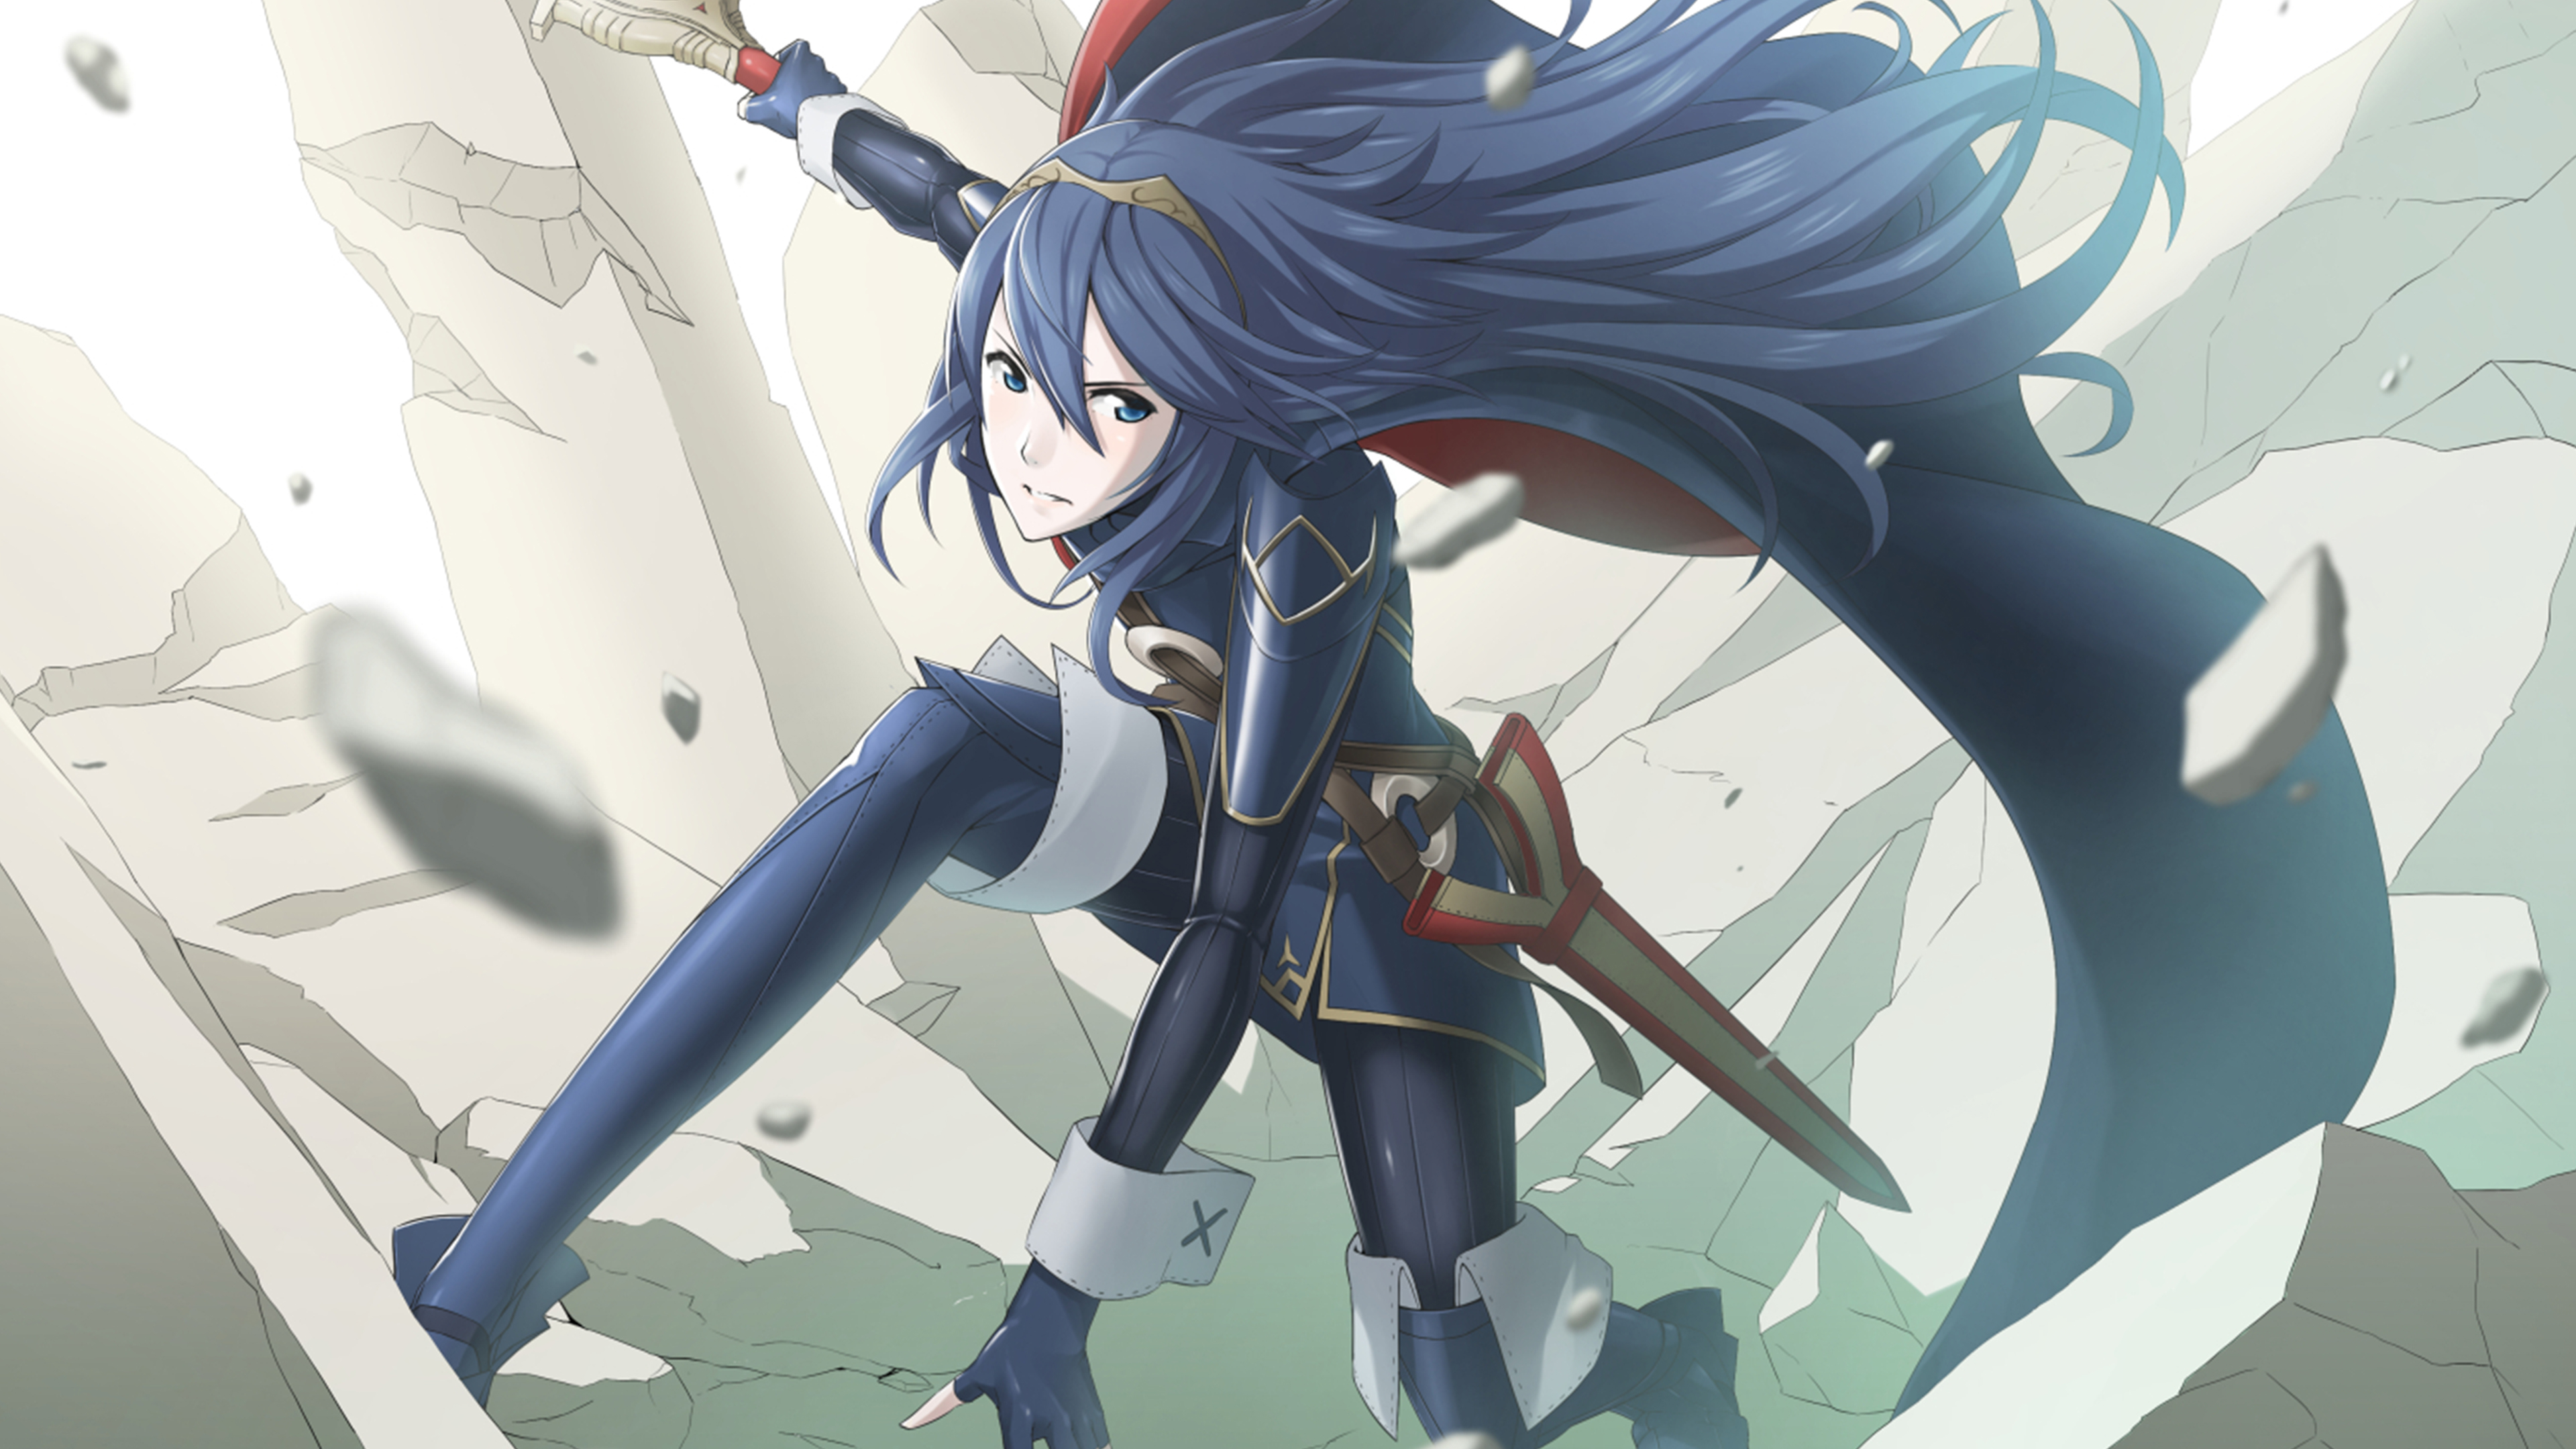 Fire Emblem Awakening Lucina 4k Ultra Hd Wallpaper Background